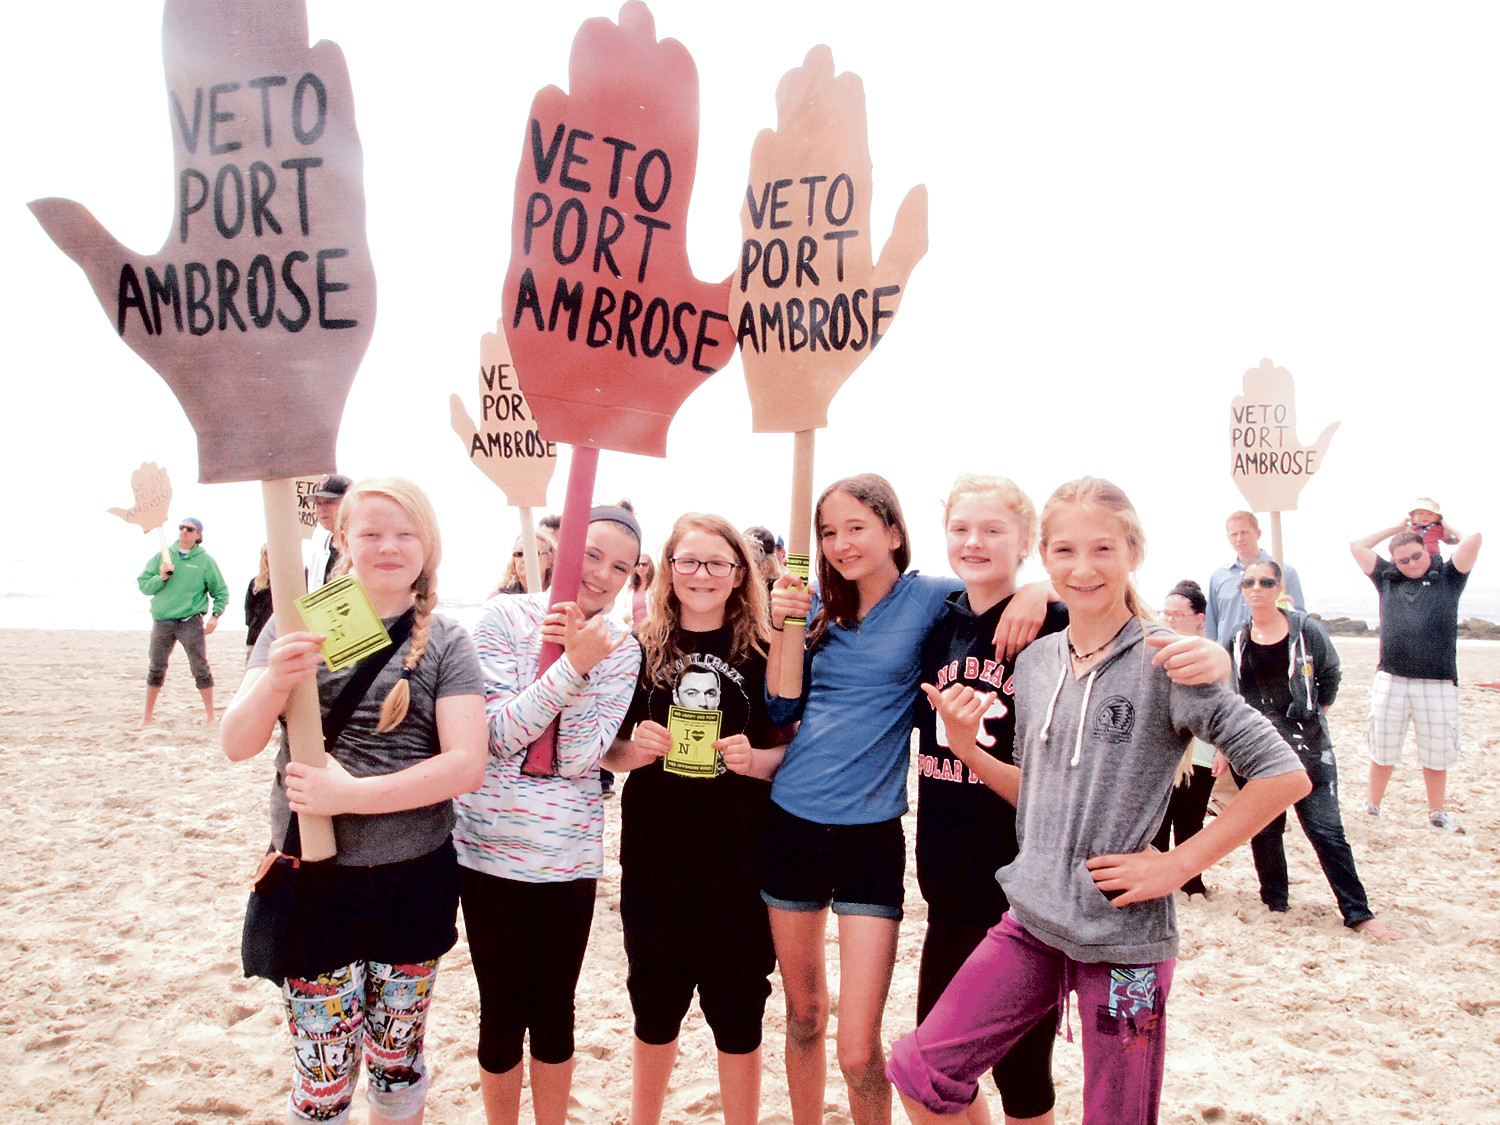 Young Surfriders Abigail Murray, left, Fiona Power, Ceili Heffernan, Lucia Tomicick, Ava Rockefeller and Noelle Michelman